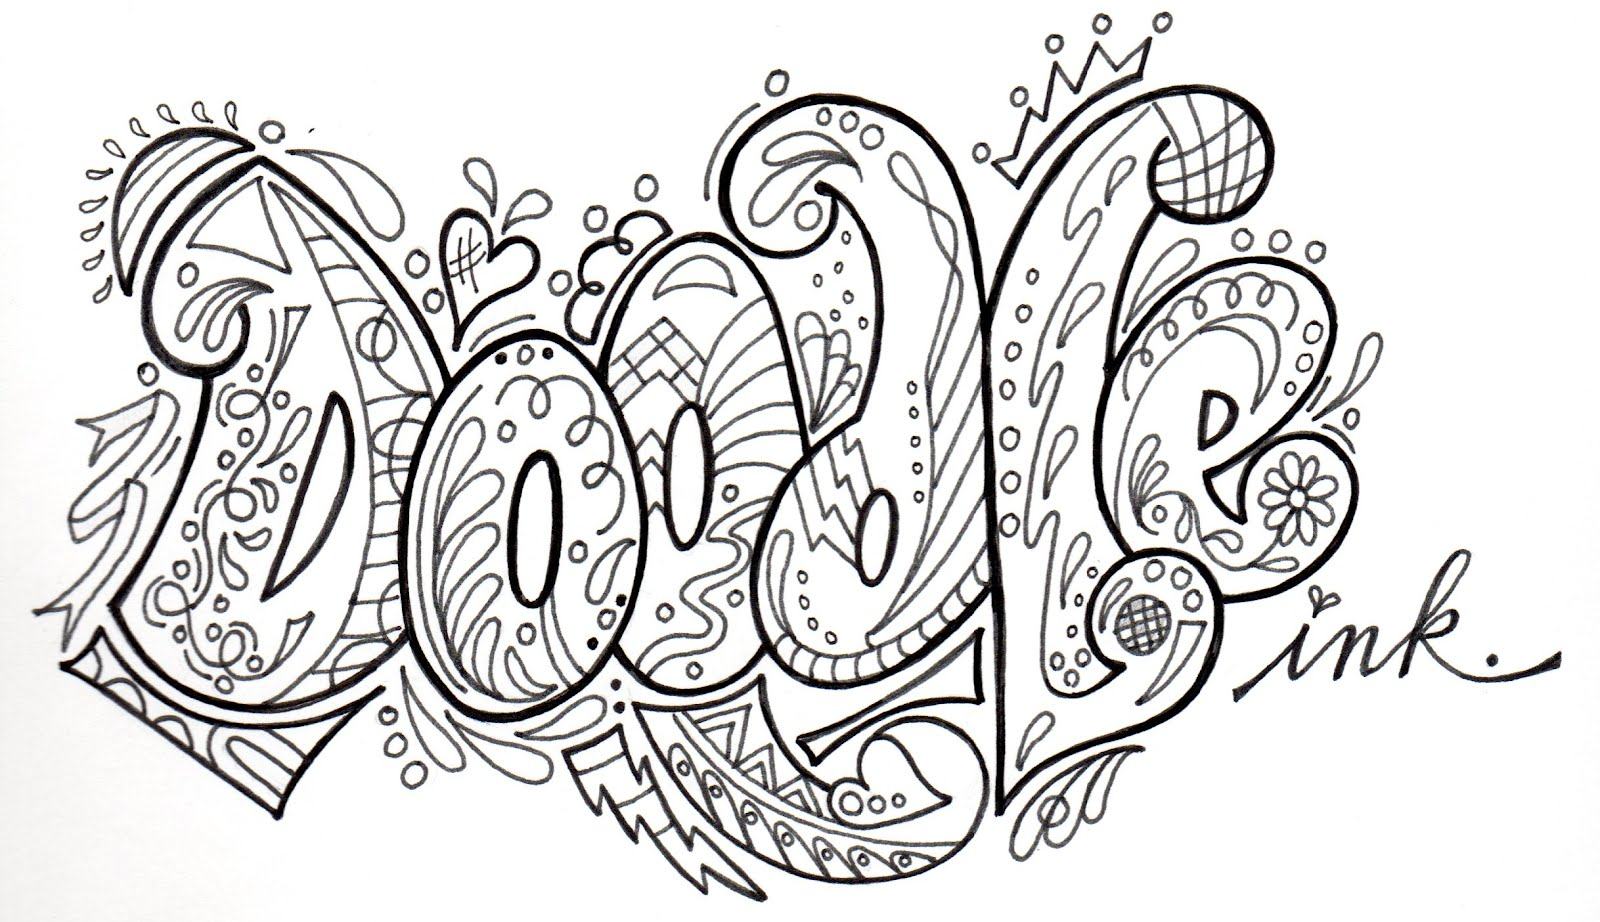 Pamela Jane's Studio: doodling class in april